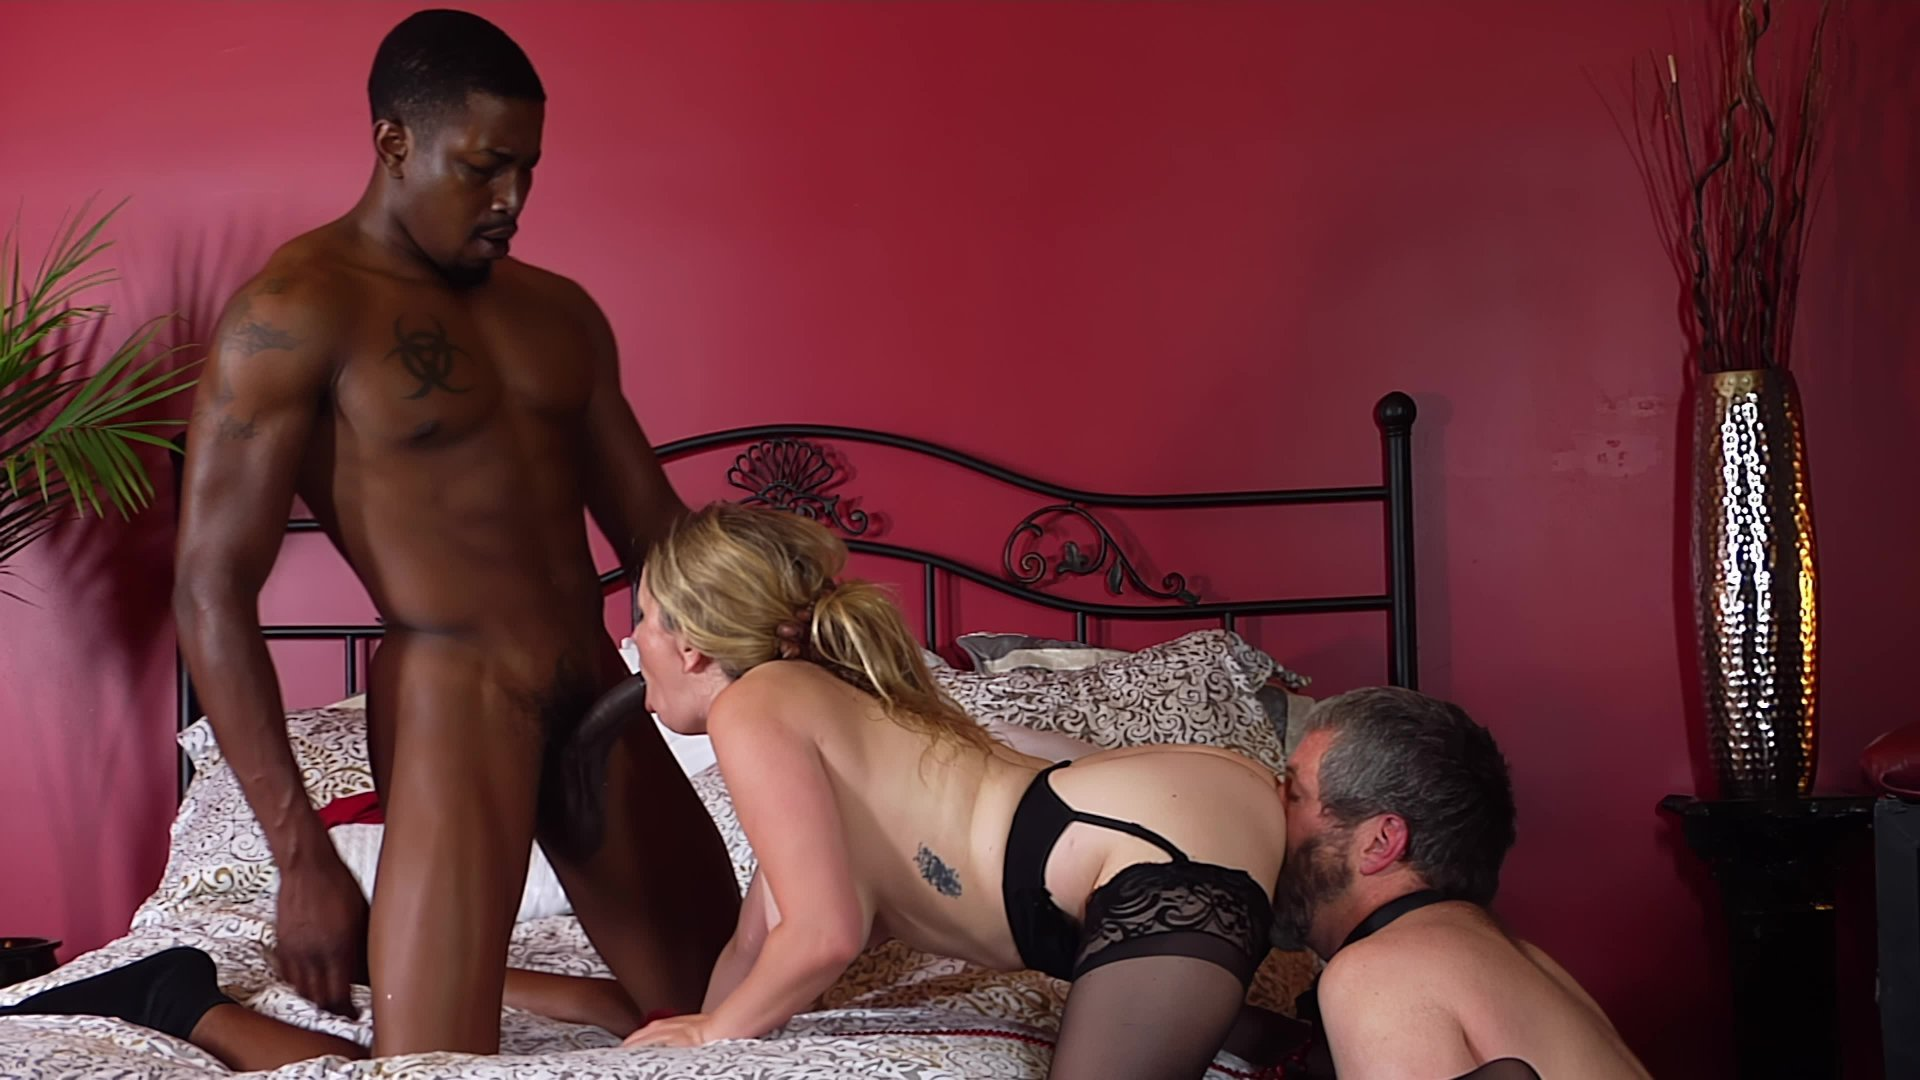 Free Video Preview image 3 from Kinky Cuckold 2